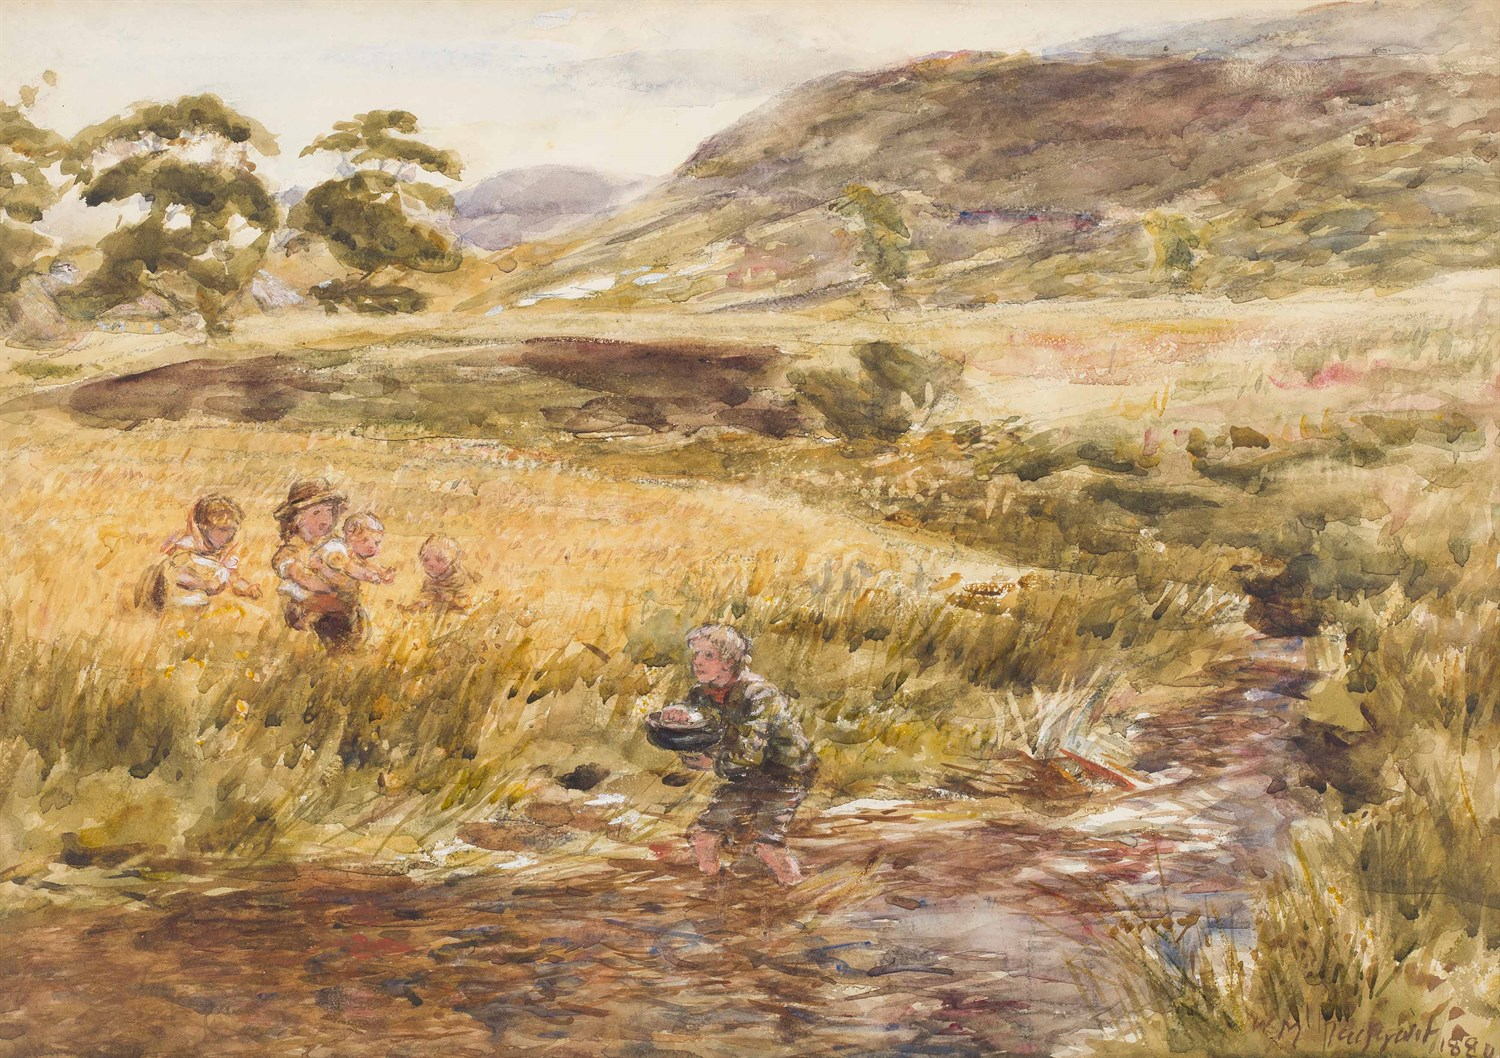 Lot 14-WILLIAM MCTAGGART R.S.A., R.S.W. (SCOTTISH 1835-1910)